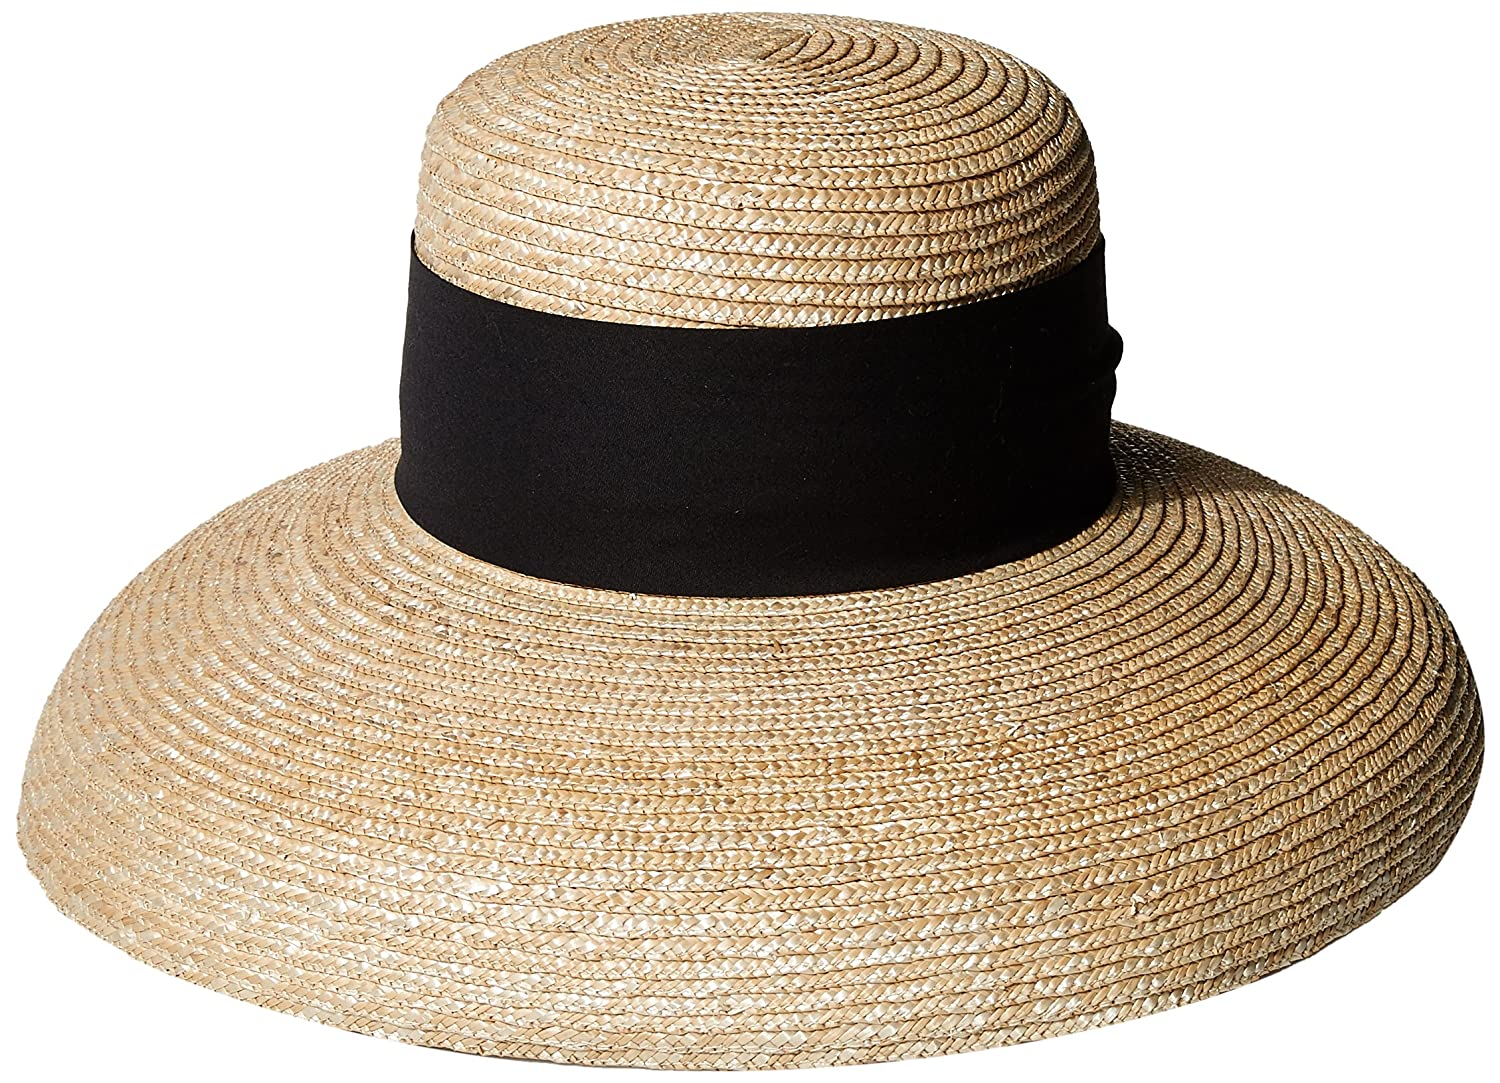 Gottex Sasha Milan Sunhat Packable, Adjustable And Upf Rated by Gottex